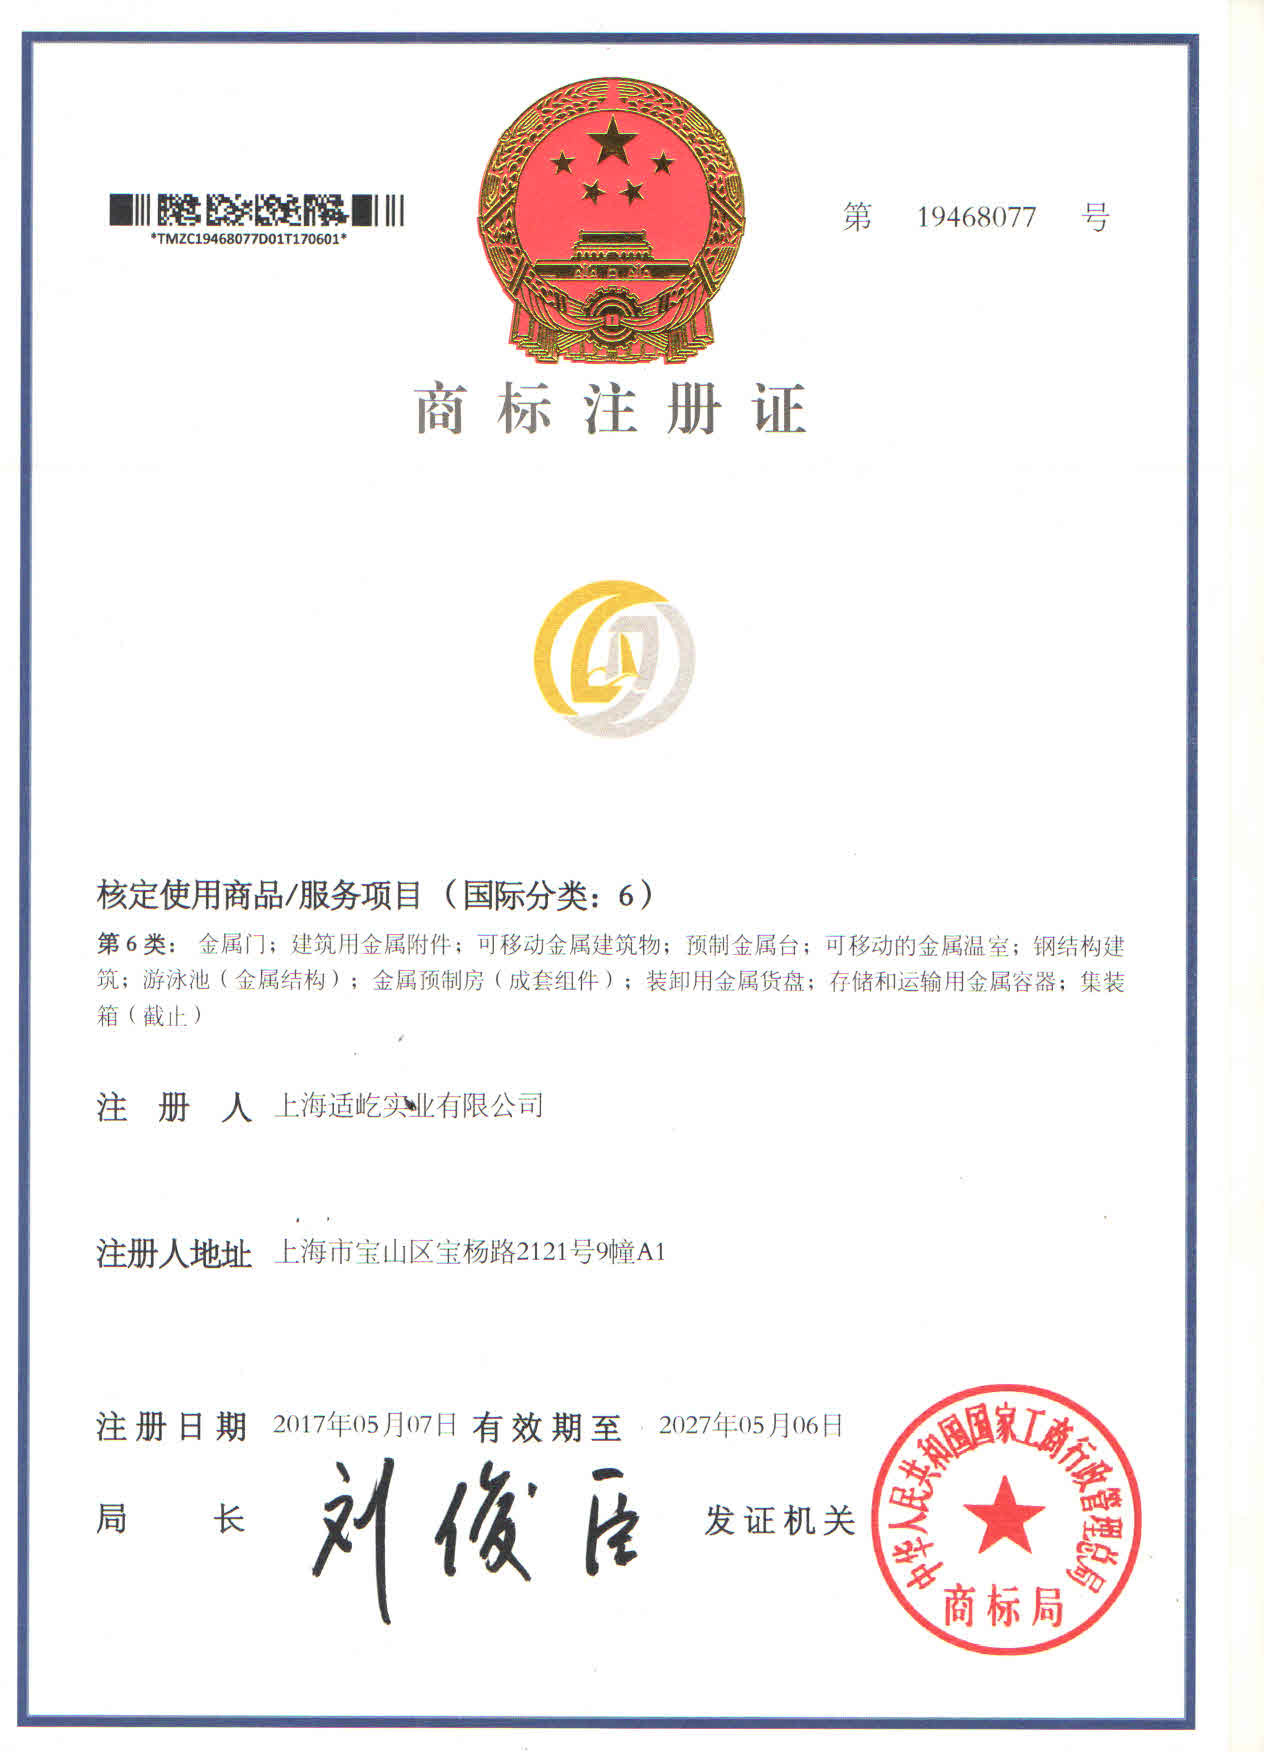 China Shanghai Shiyi Industrial Co., Ltd. Certification